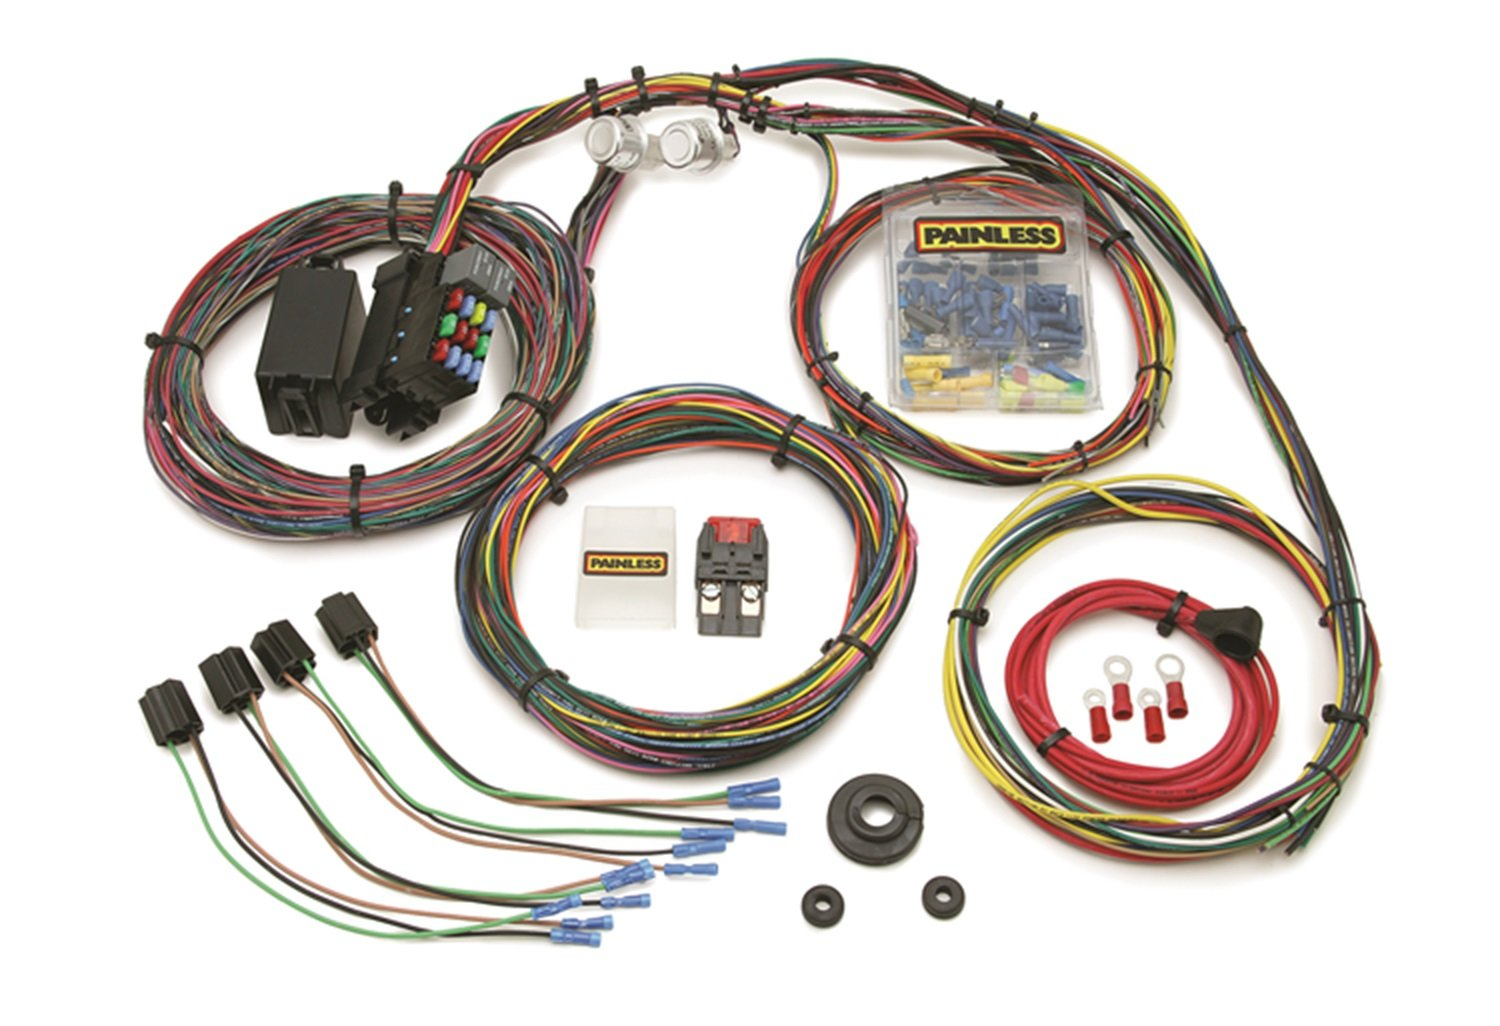 71gWOH5D5zL._SL1500_ amazon com painless 10127 automotive painless wiring harness rebate at gsmx.co